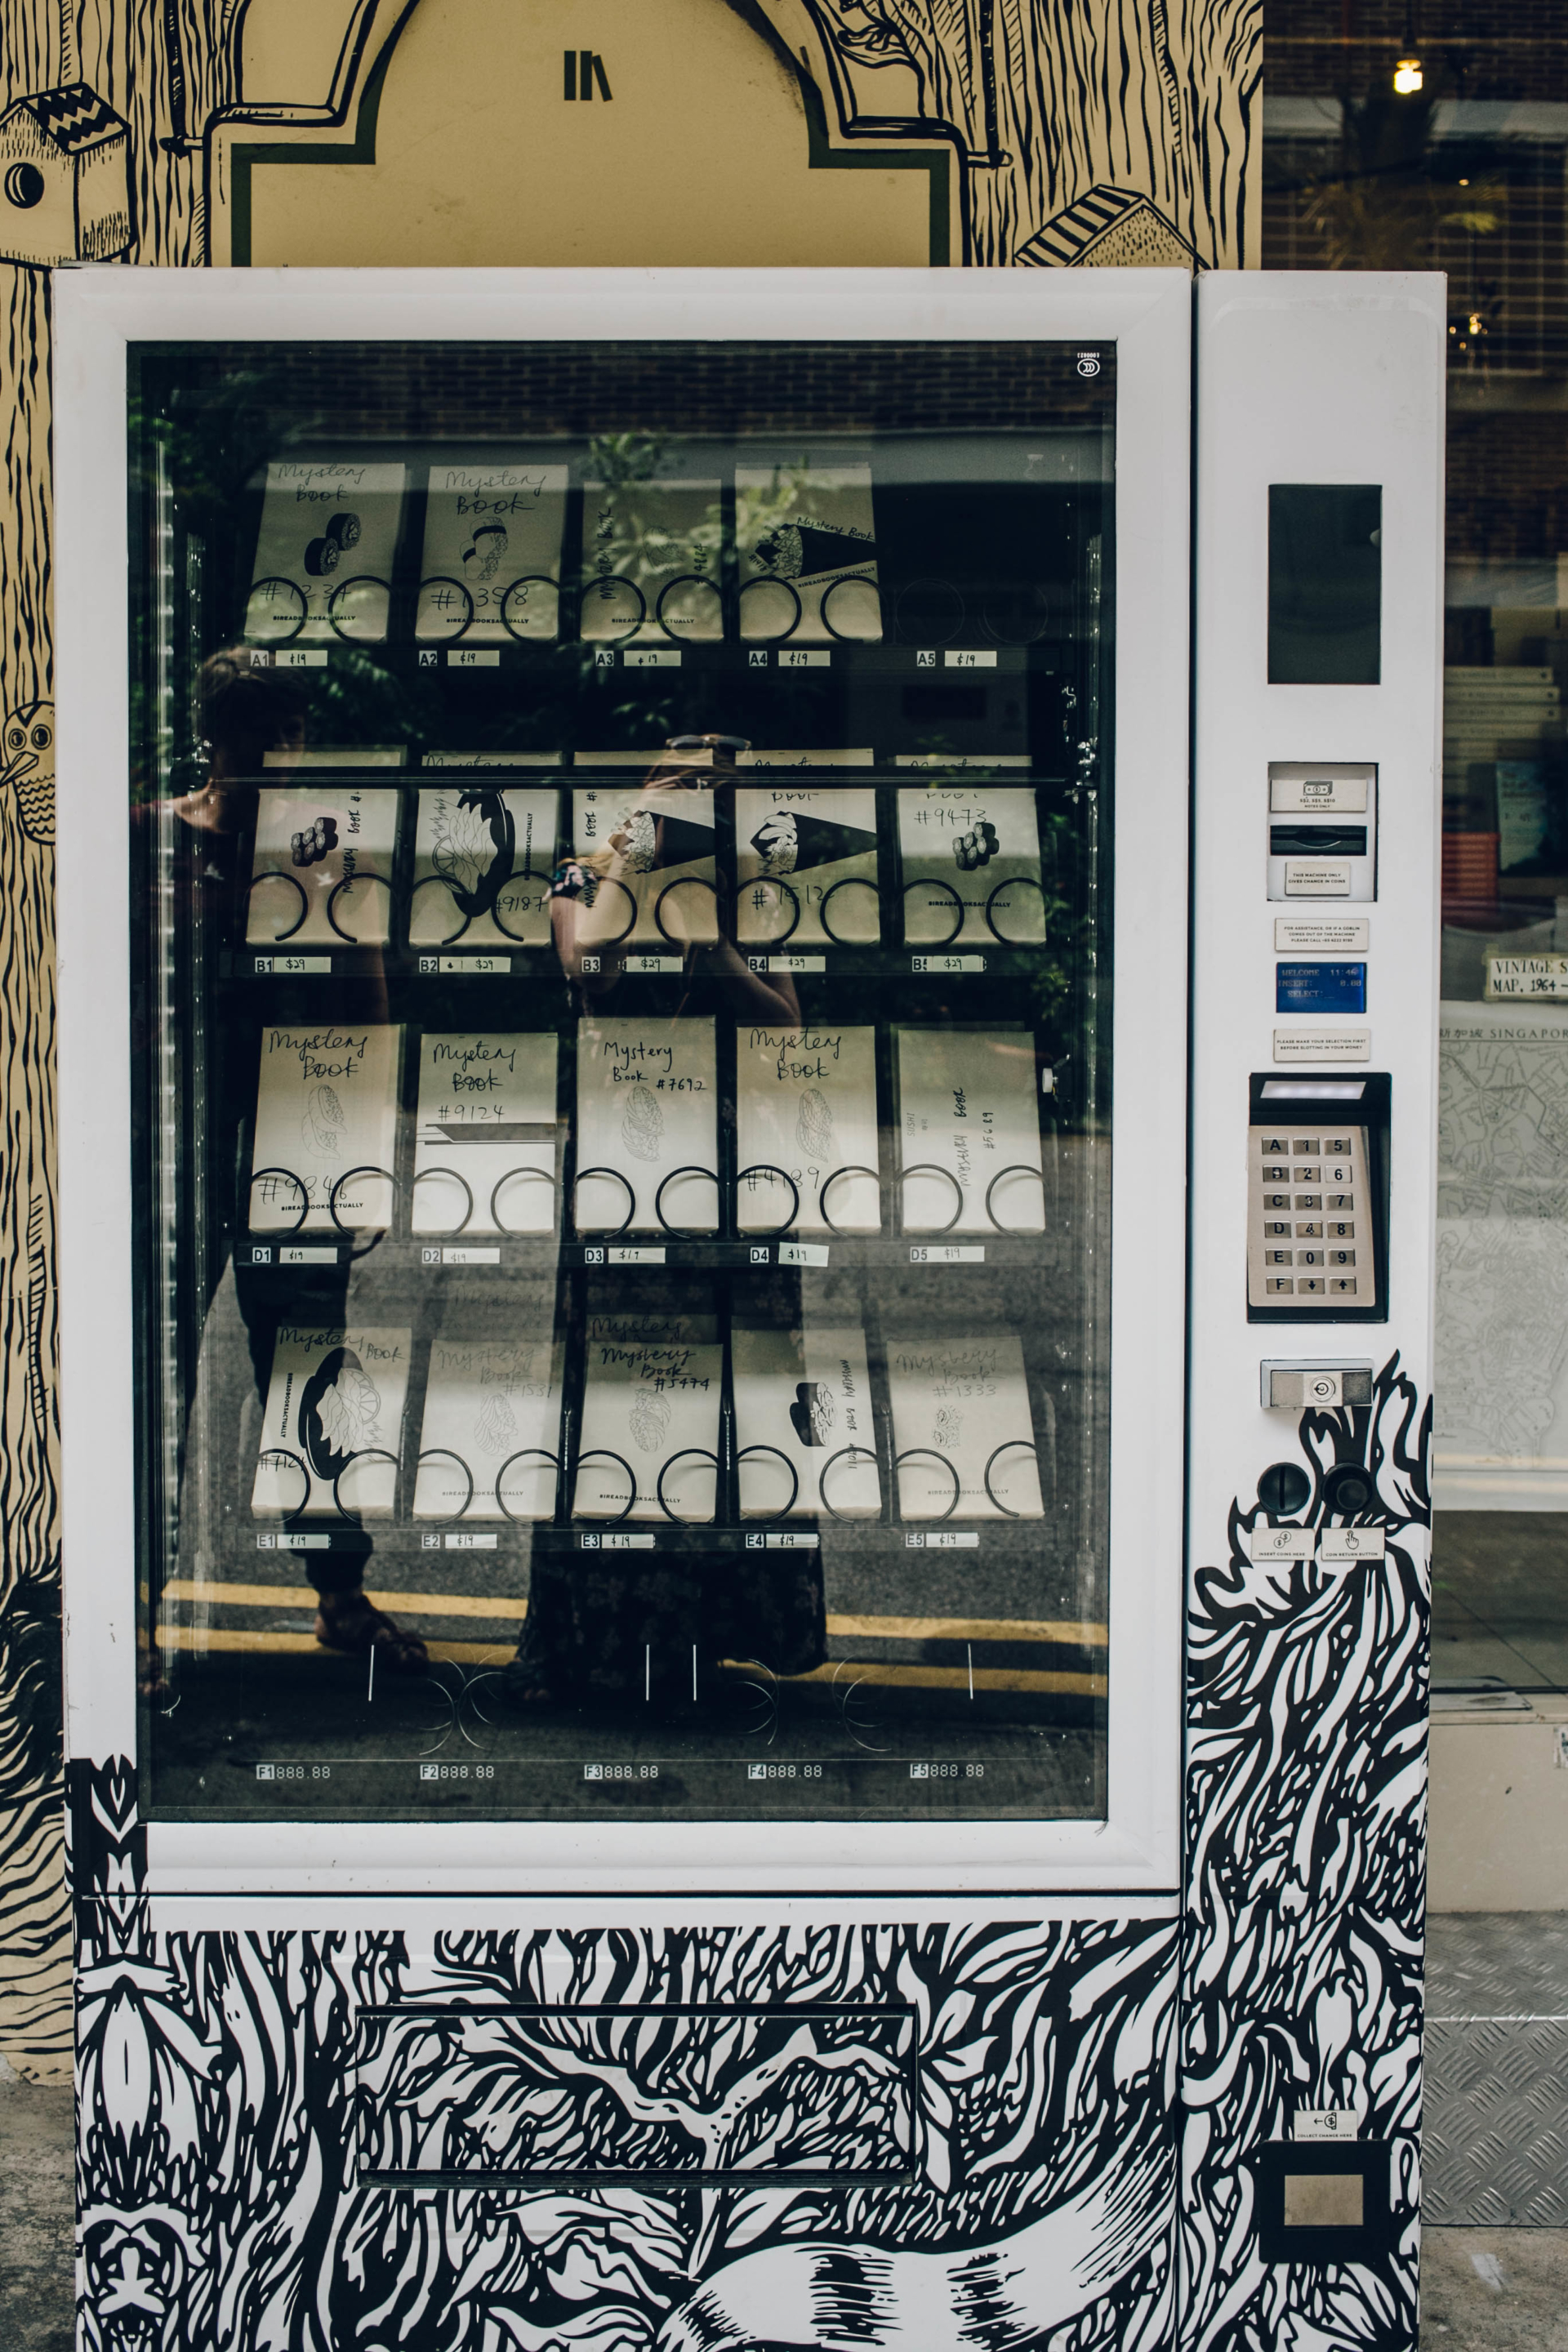 Book vending machine at Books Actually in Singapore